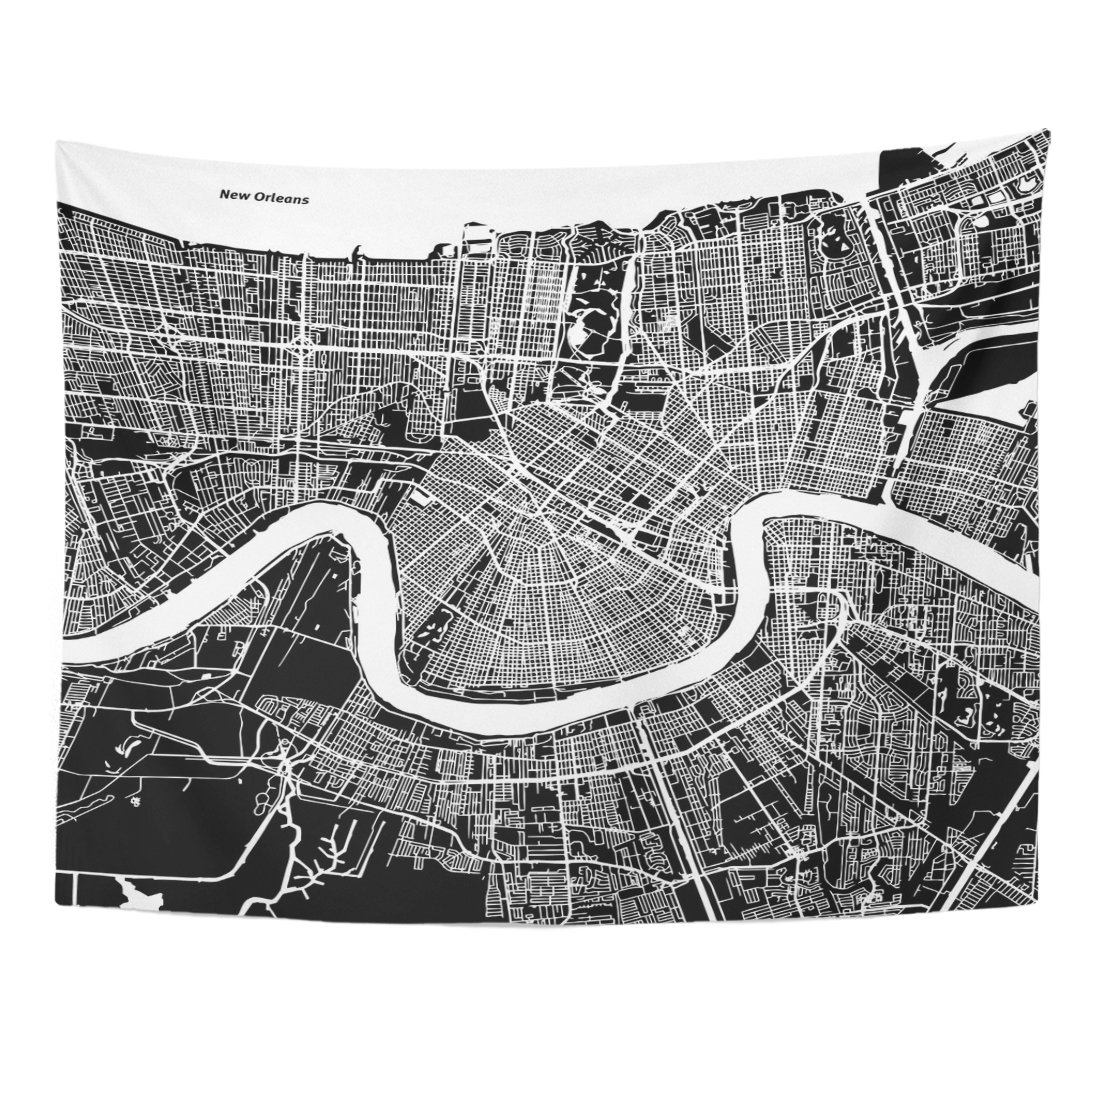 Emvency Tapestry Downtown New Orleans Map Artprint Black Landmass White Water and Roads Mississippi River Home Decor Wall Hanging for Living Room Bedroom Dorm 60x80 Inches